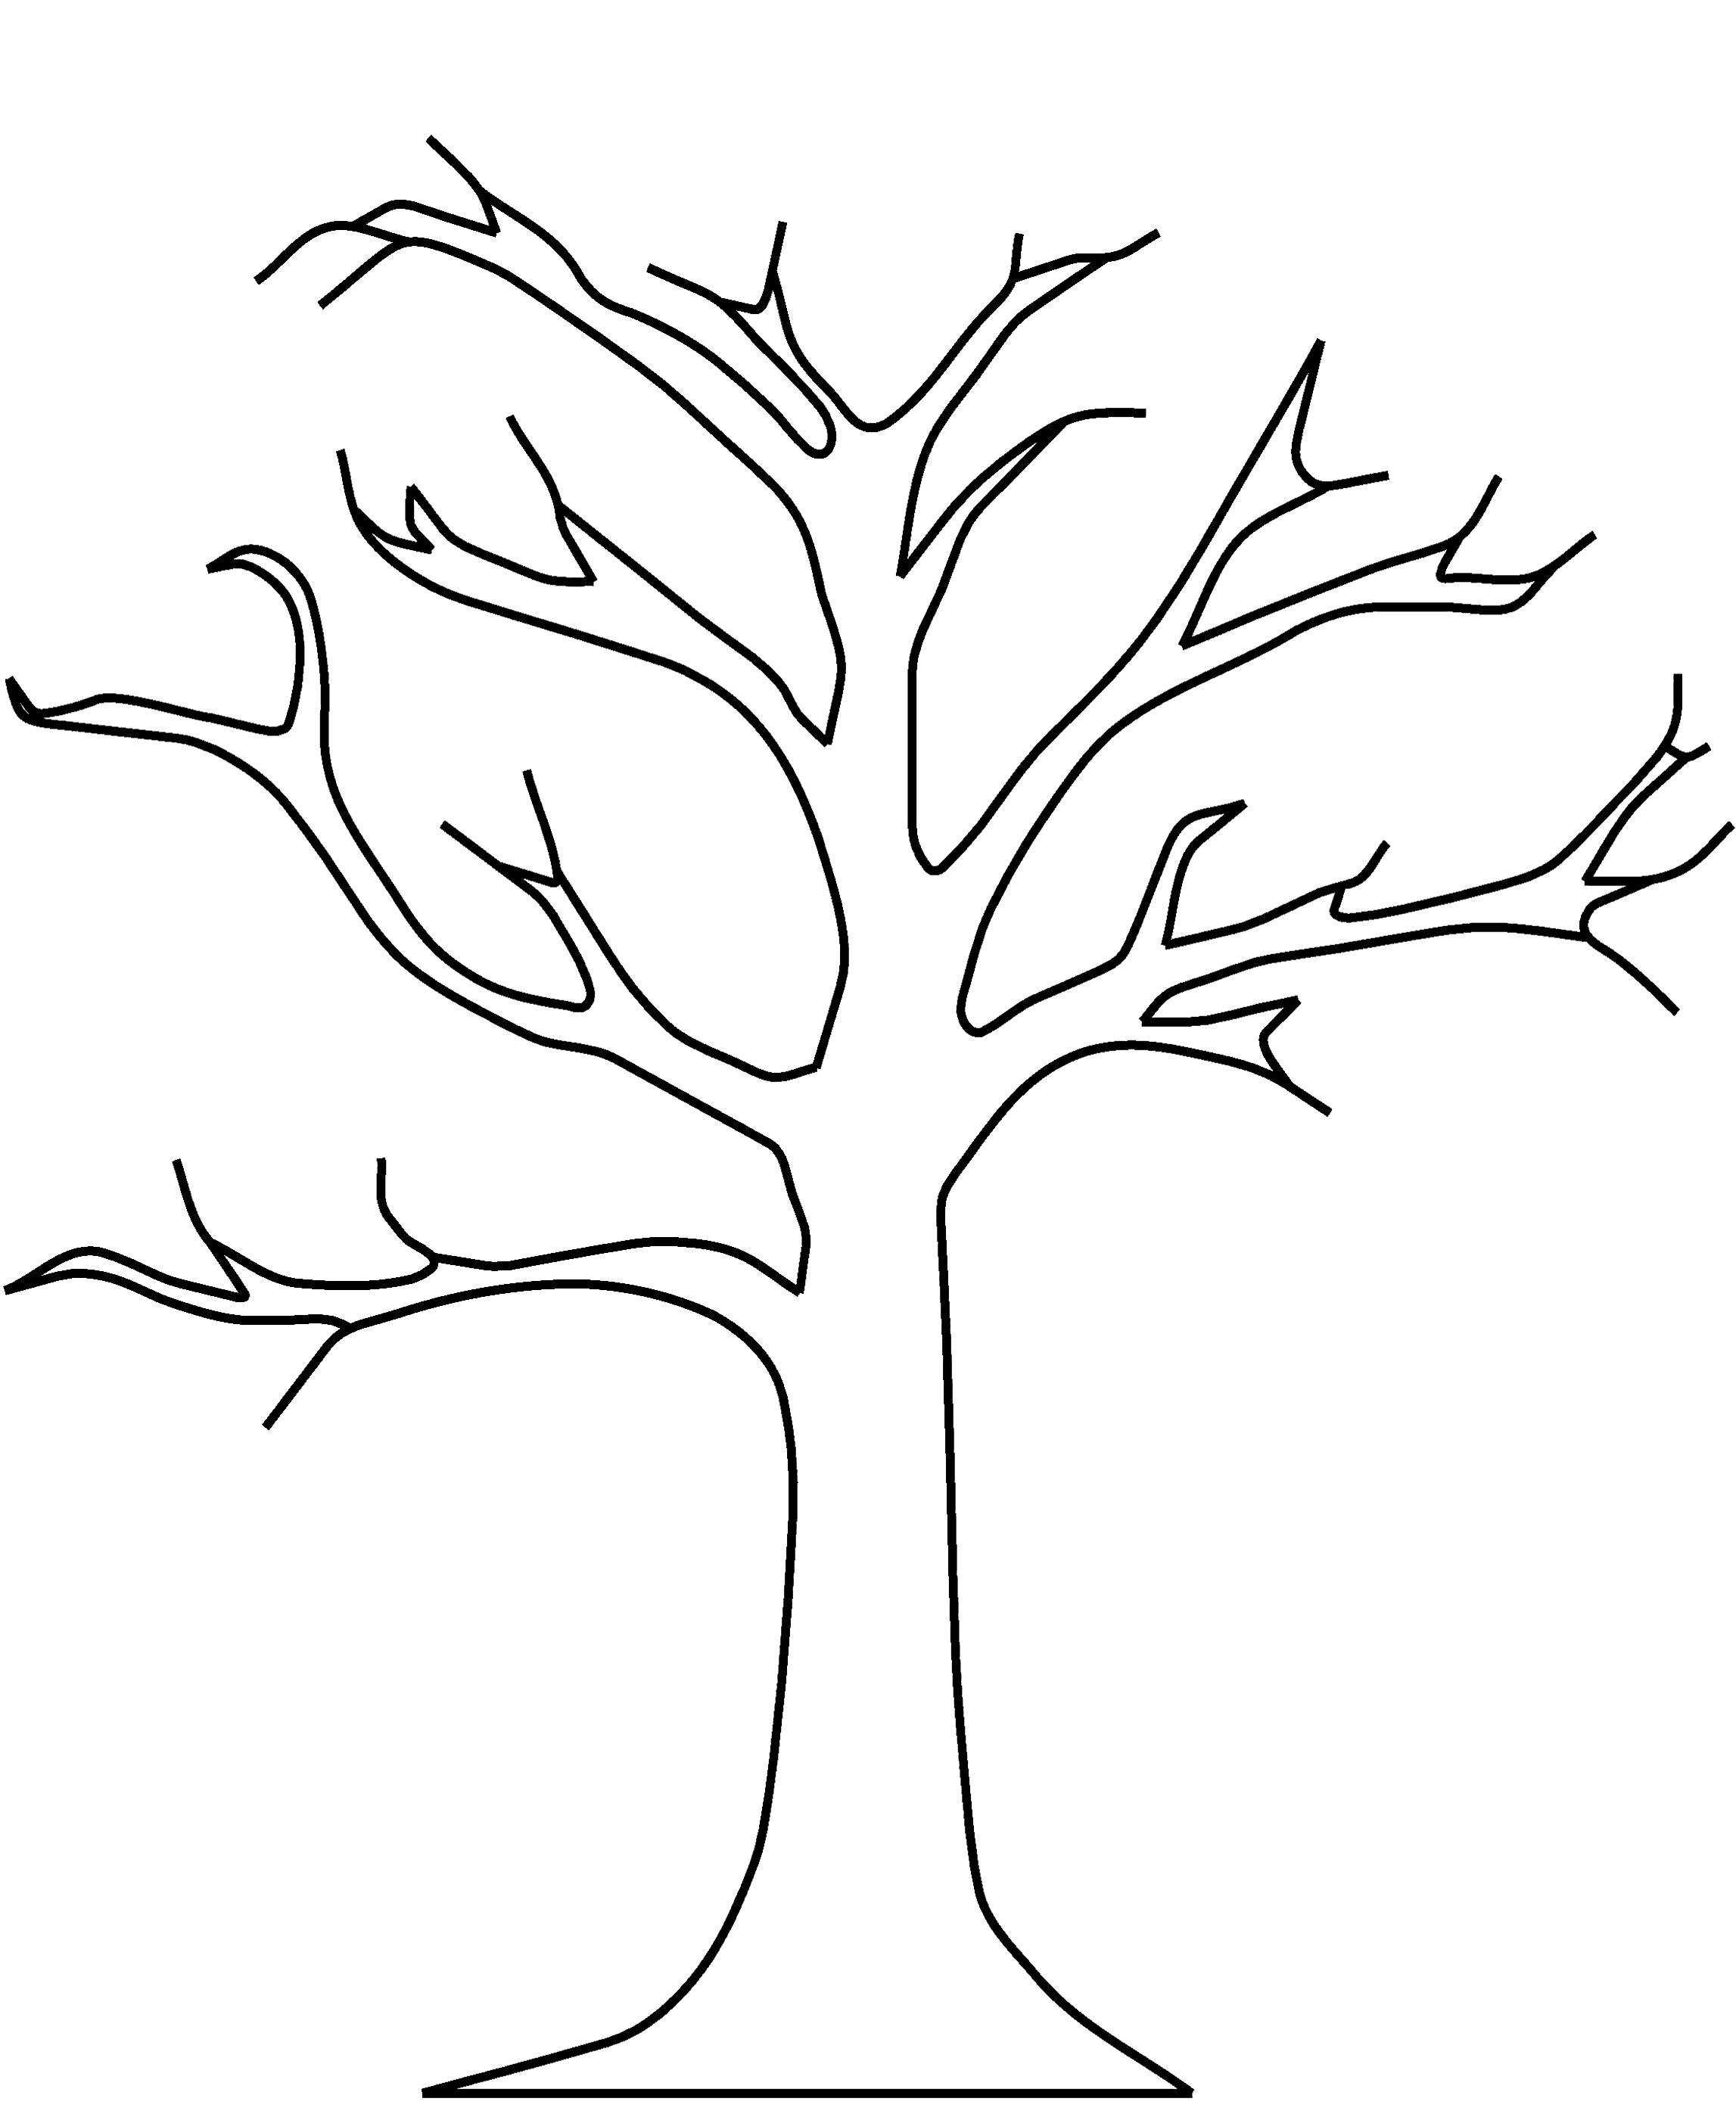 Leaf Black And White Tree No Leaves Clipart Black And